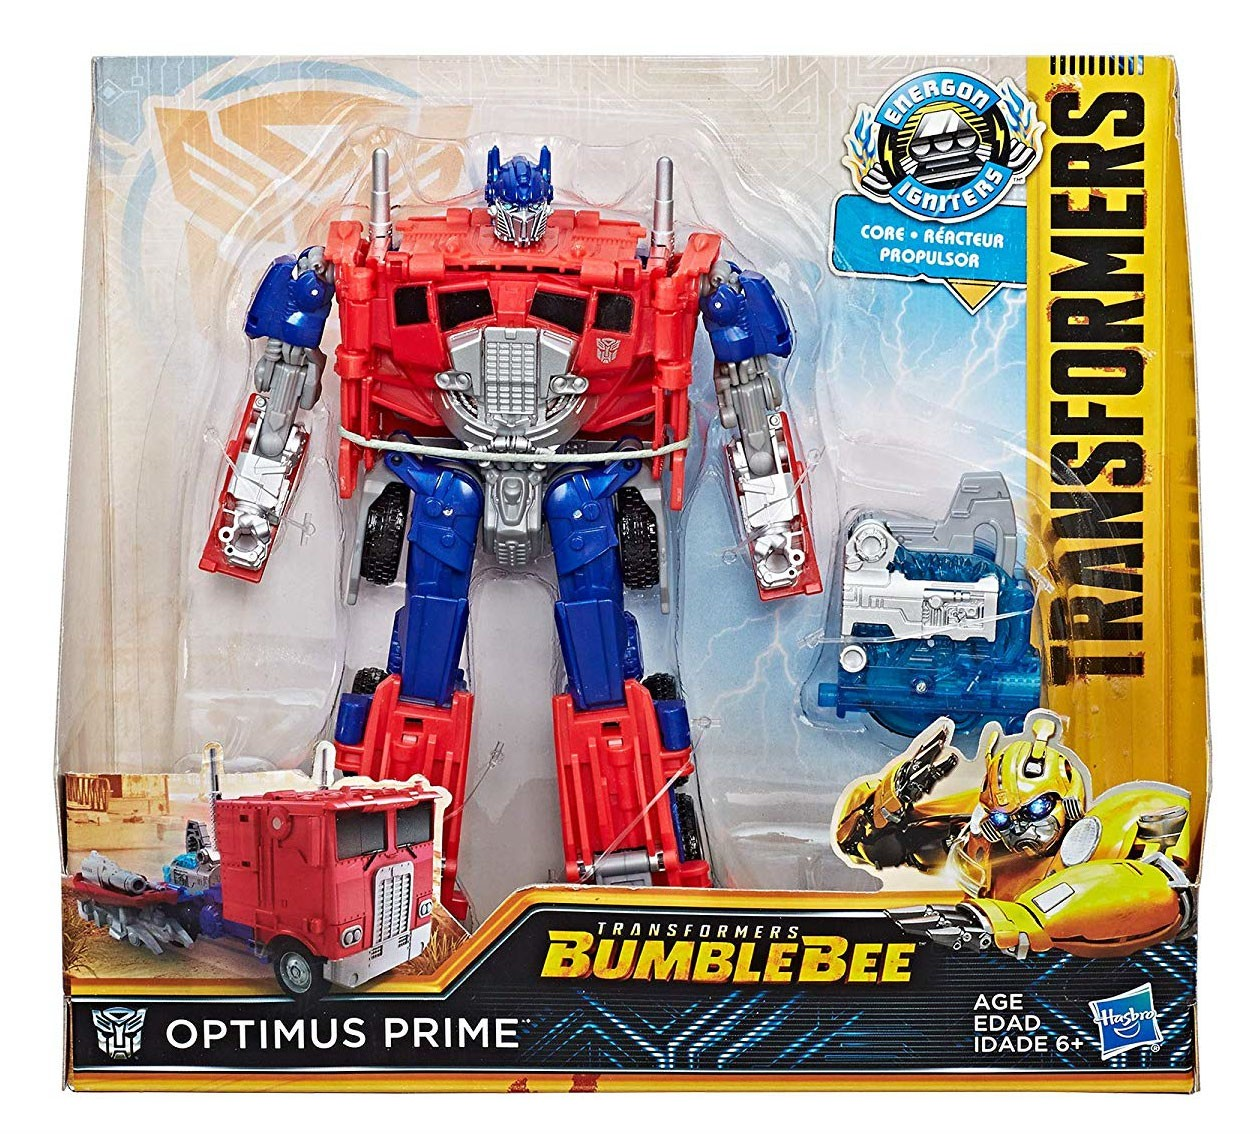 Transformers News: Bumblebee Movie toys are currently available on Amazon.com plus Studio Series and more #JoinTheBuzz